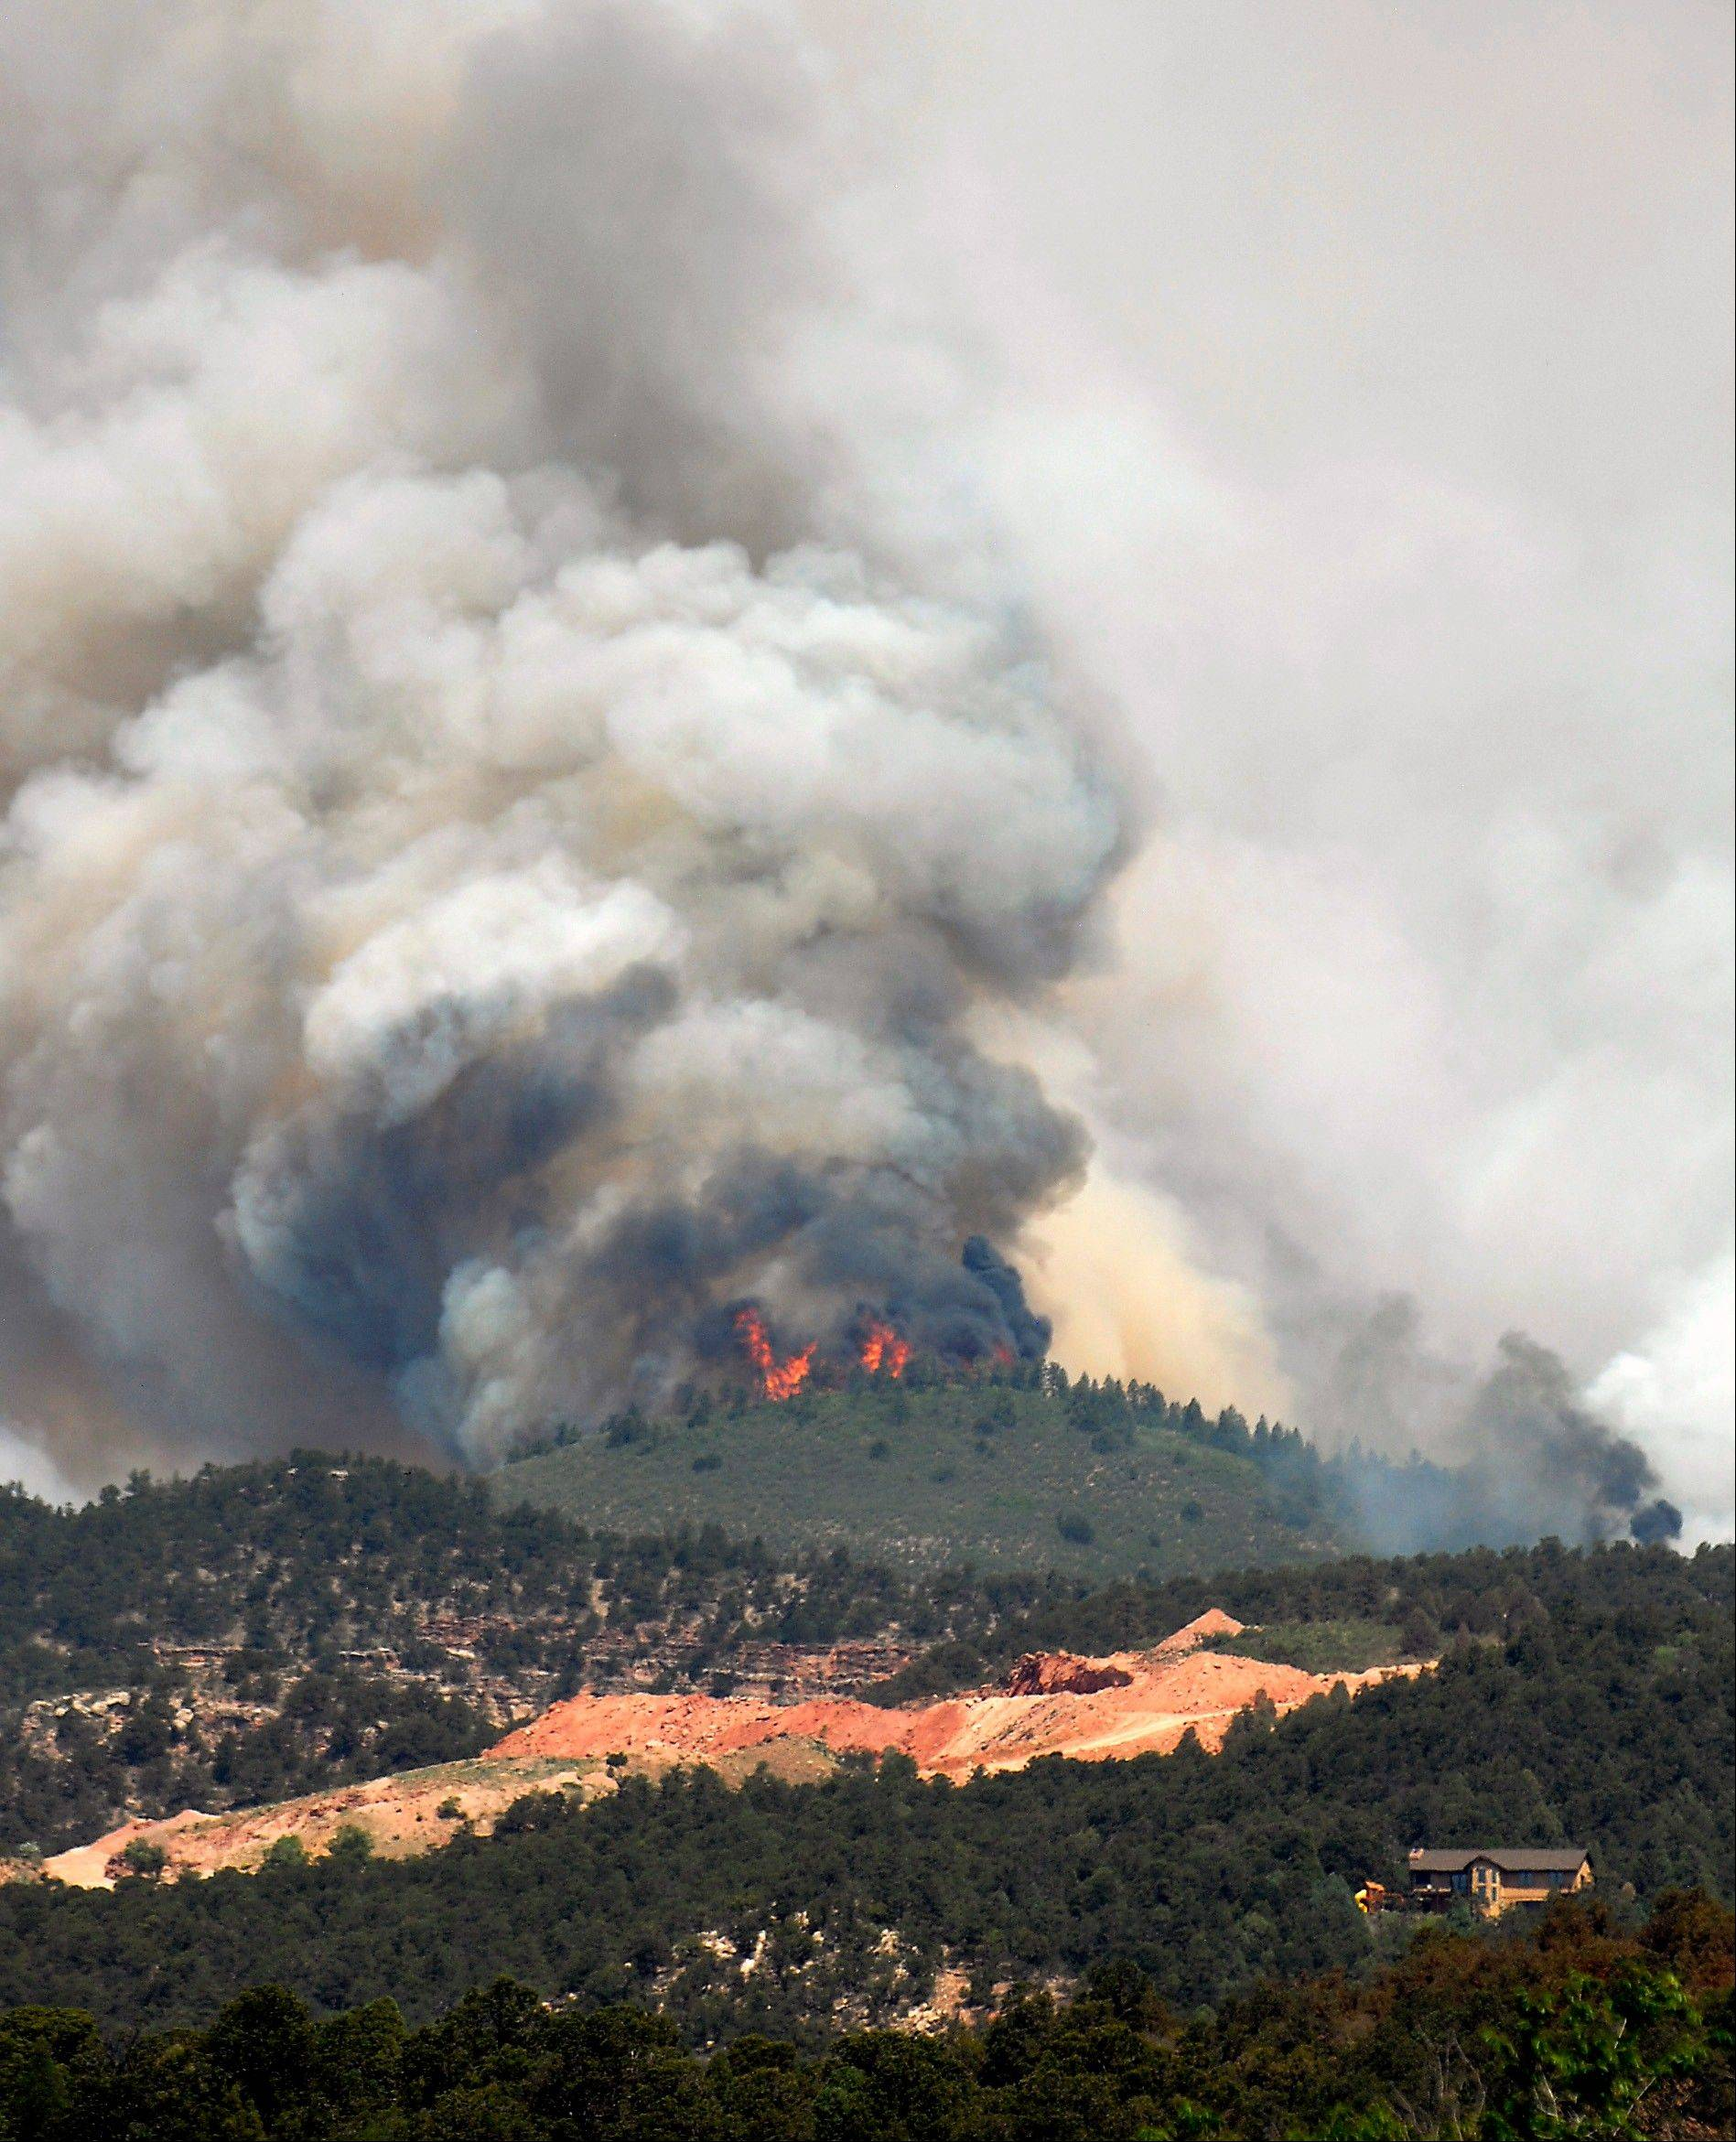 Smoke billows from a wildfire burning near Colorado Springs, Colo., on Sunday, June 24, 2012. The fire erupted and grew out of control to more than 3 square miles early Sunday, prompting the evacuation of more than 11,000 residents and an unknown number of tourists. On Saturday, a blaze destroyed 21 structures near the mountain community of Estes Park.